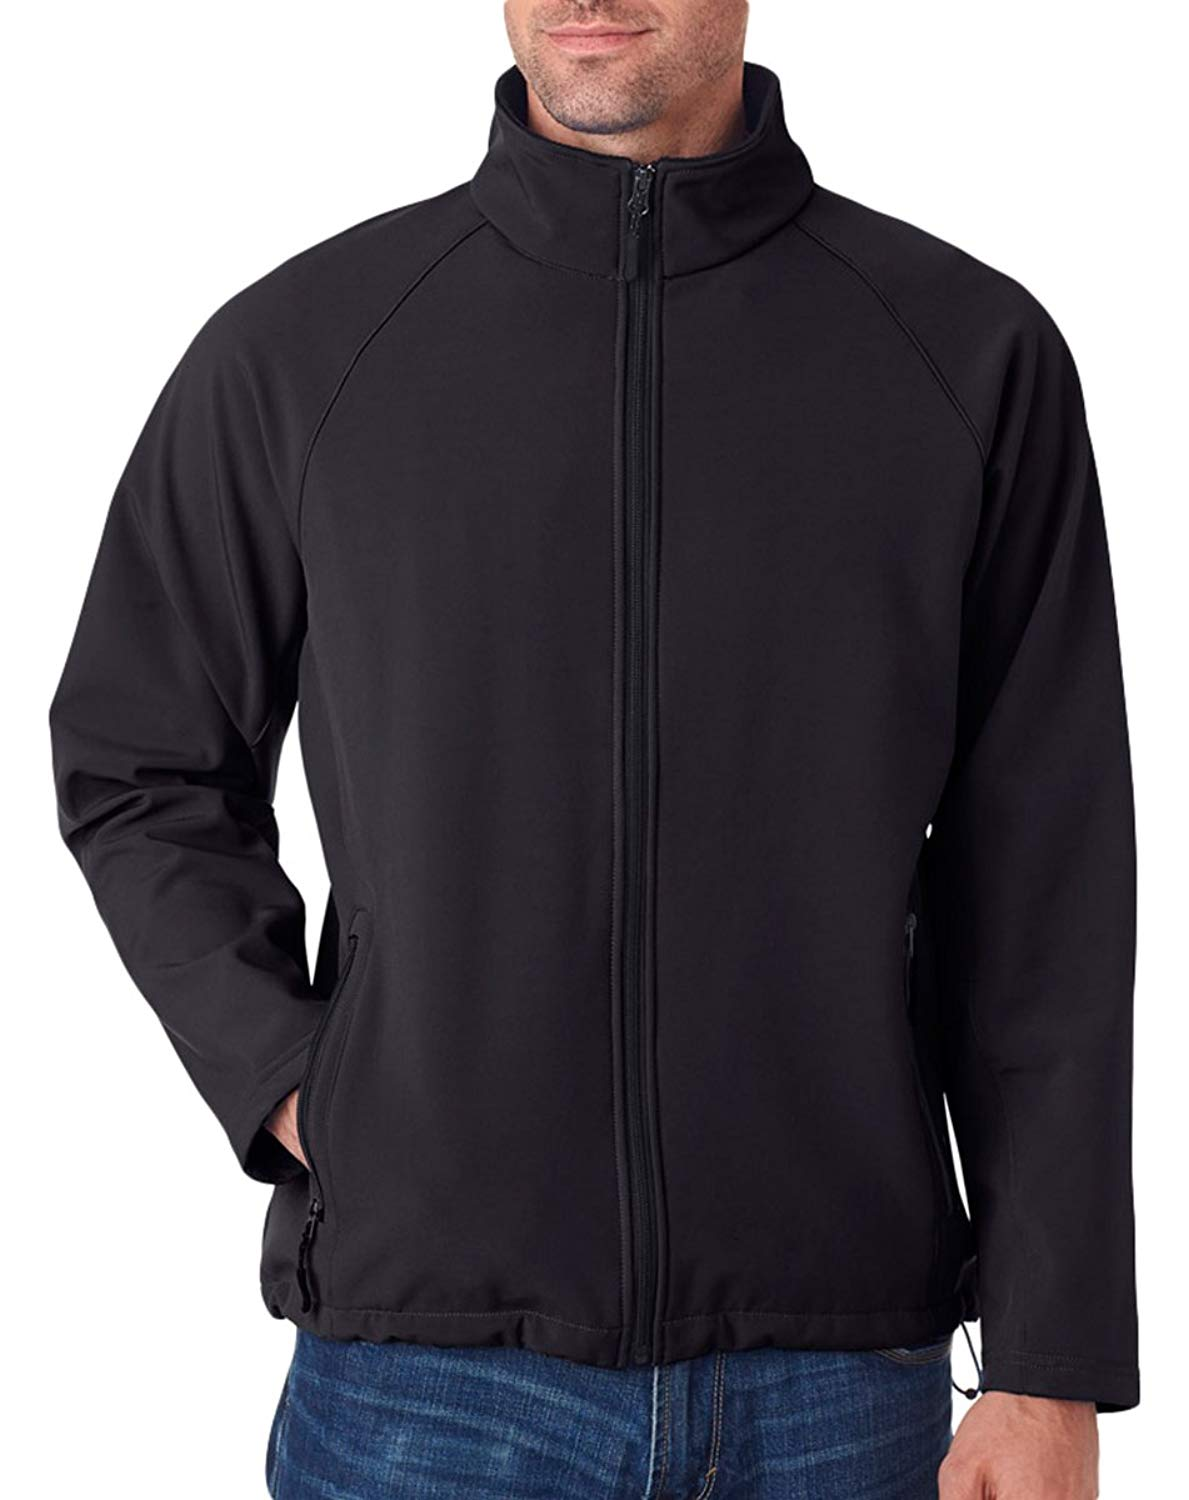 UltraClub Men's Wind Resistant Soft Shell Zipper Jacket, XXX Large, Black